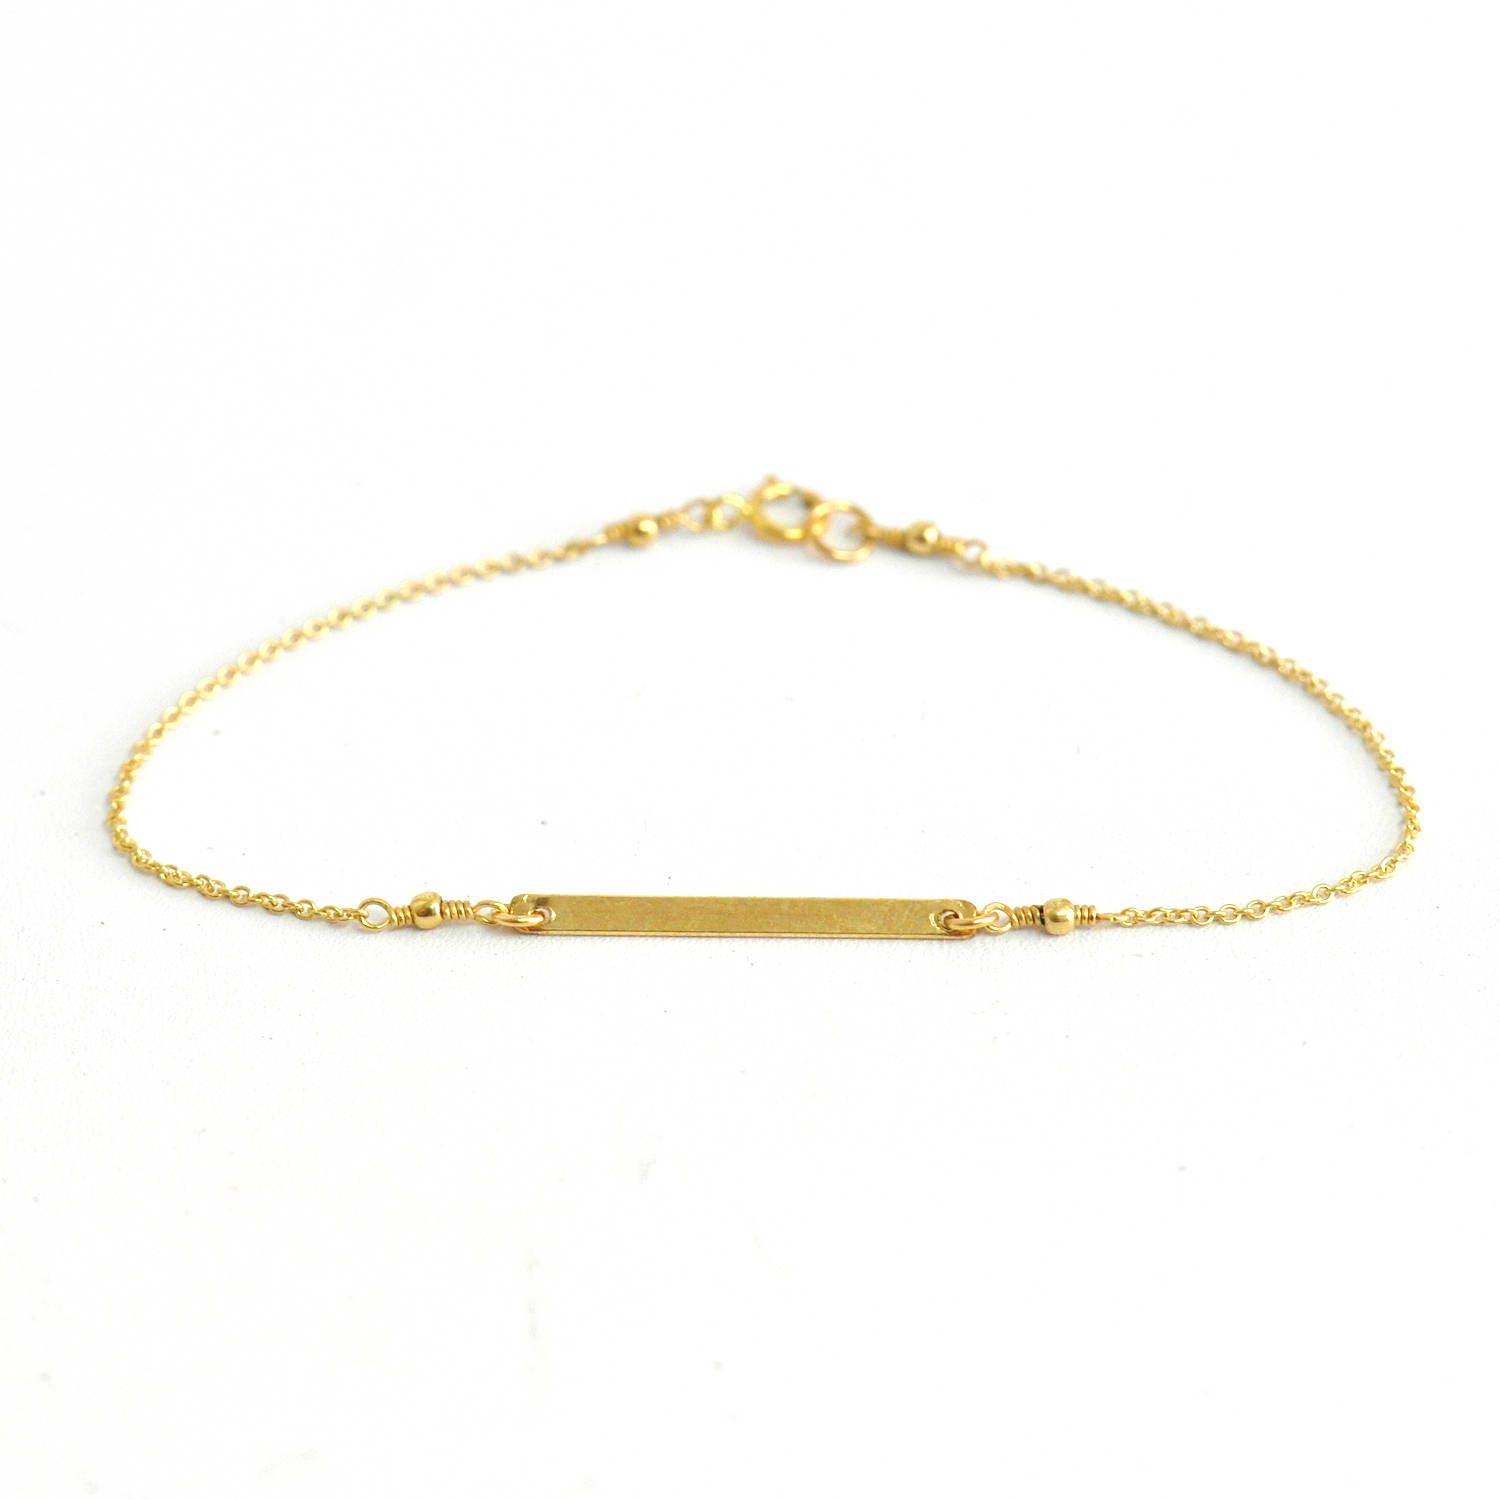 rose jewelry shane fashion co in bracelet bracelets m p gold bar